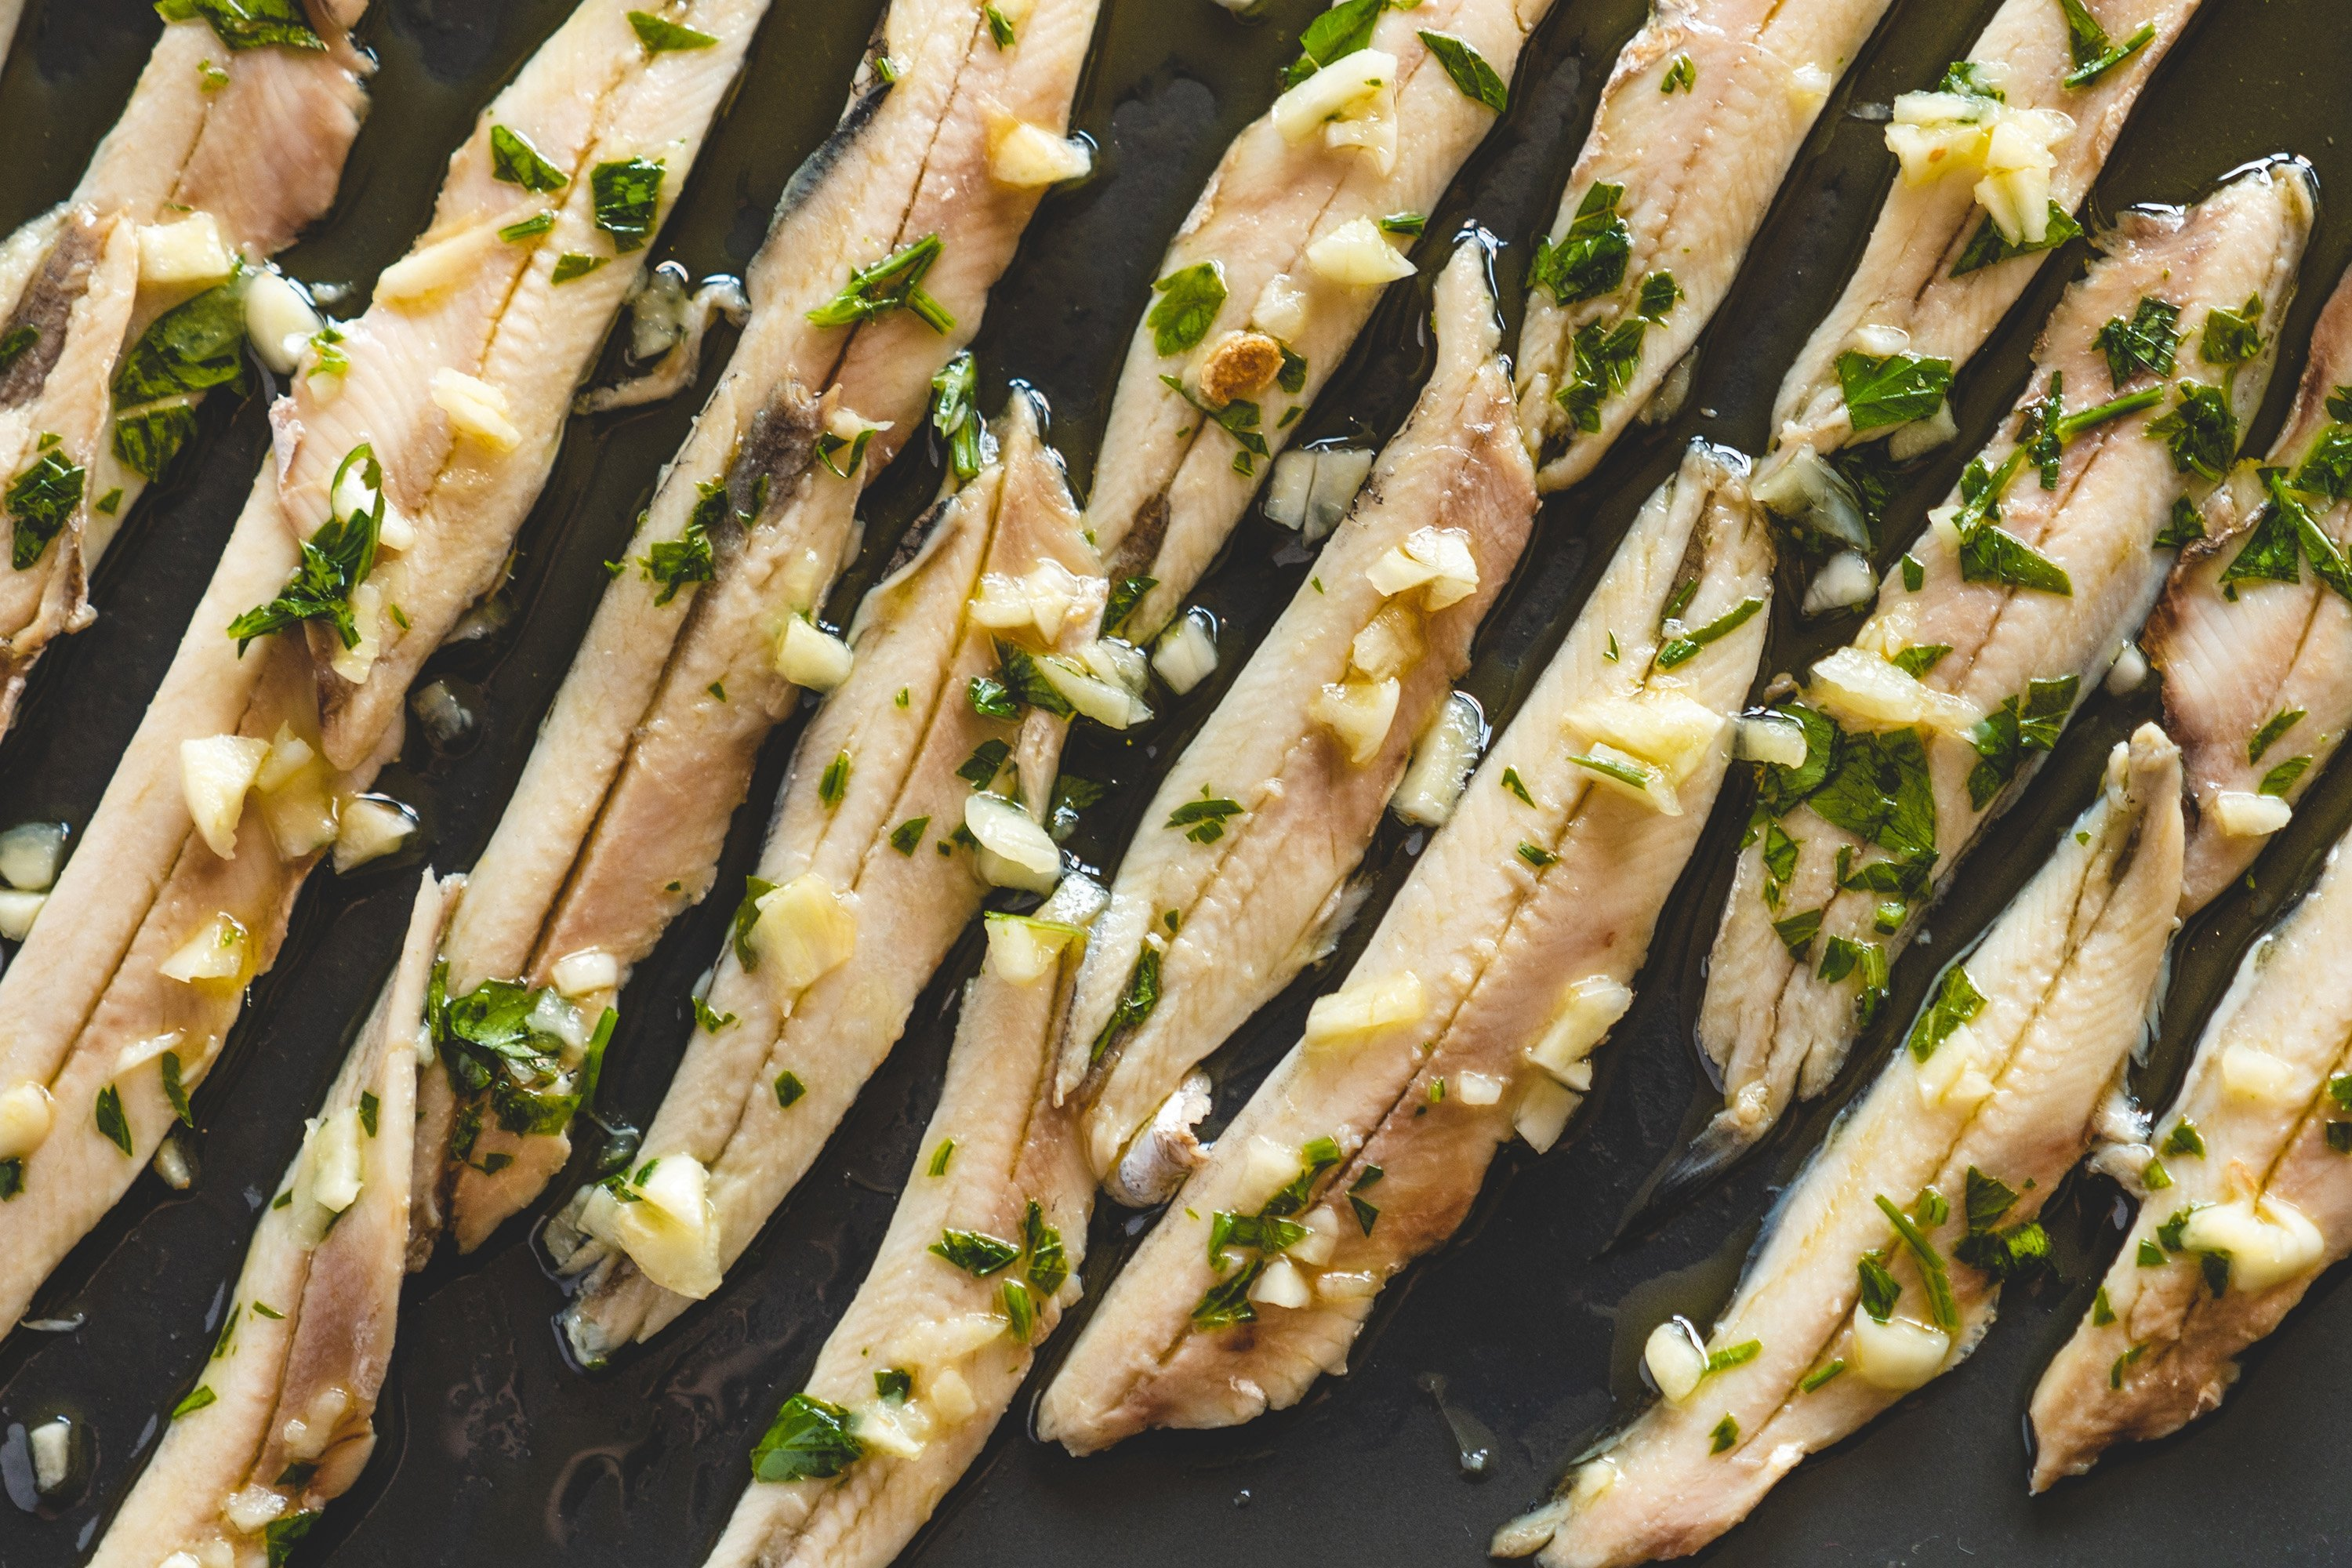 Pickled hamsi is best served with lemon, garlic and parsley. (Shutterstock Photo)